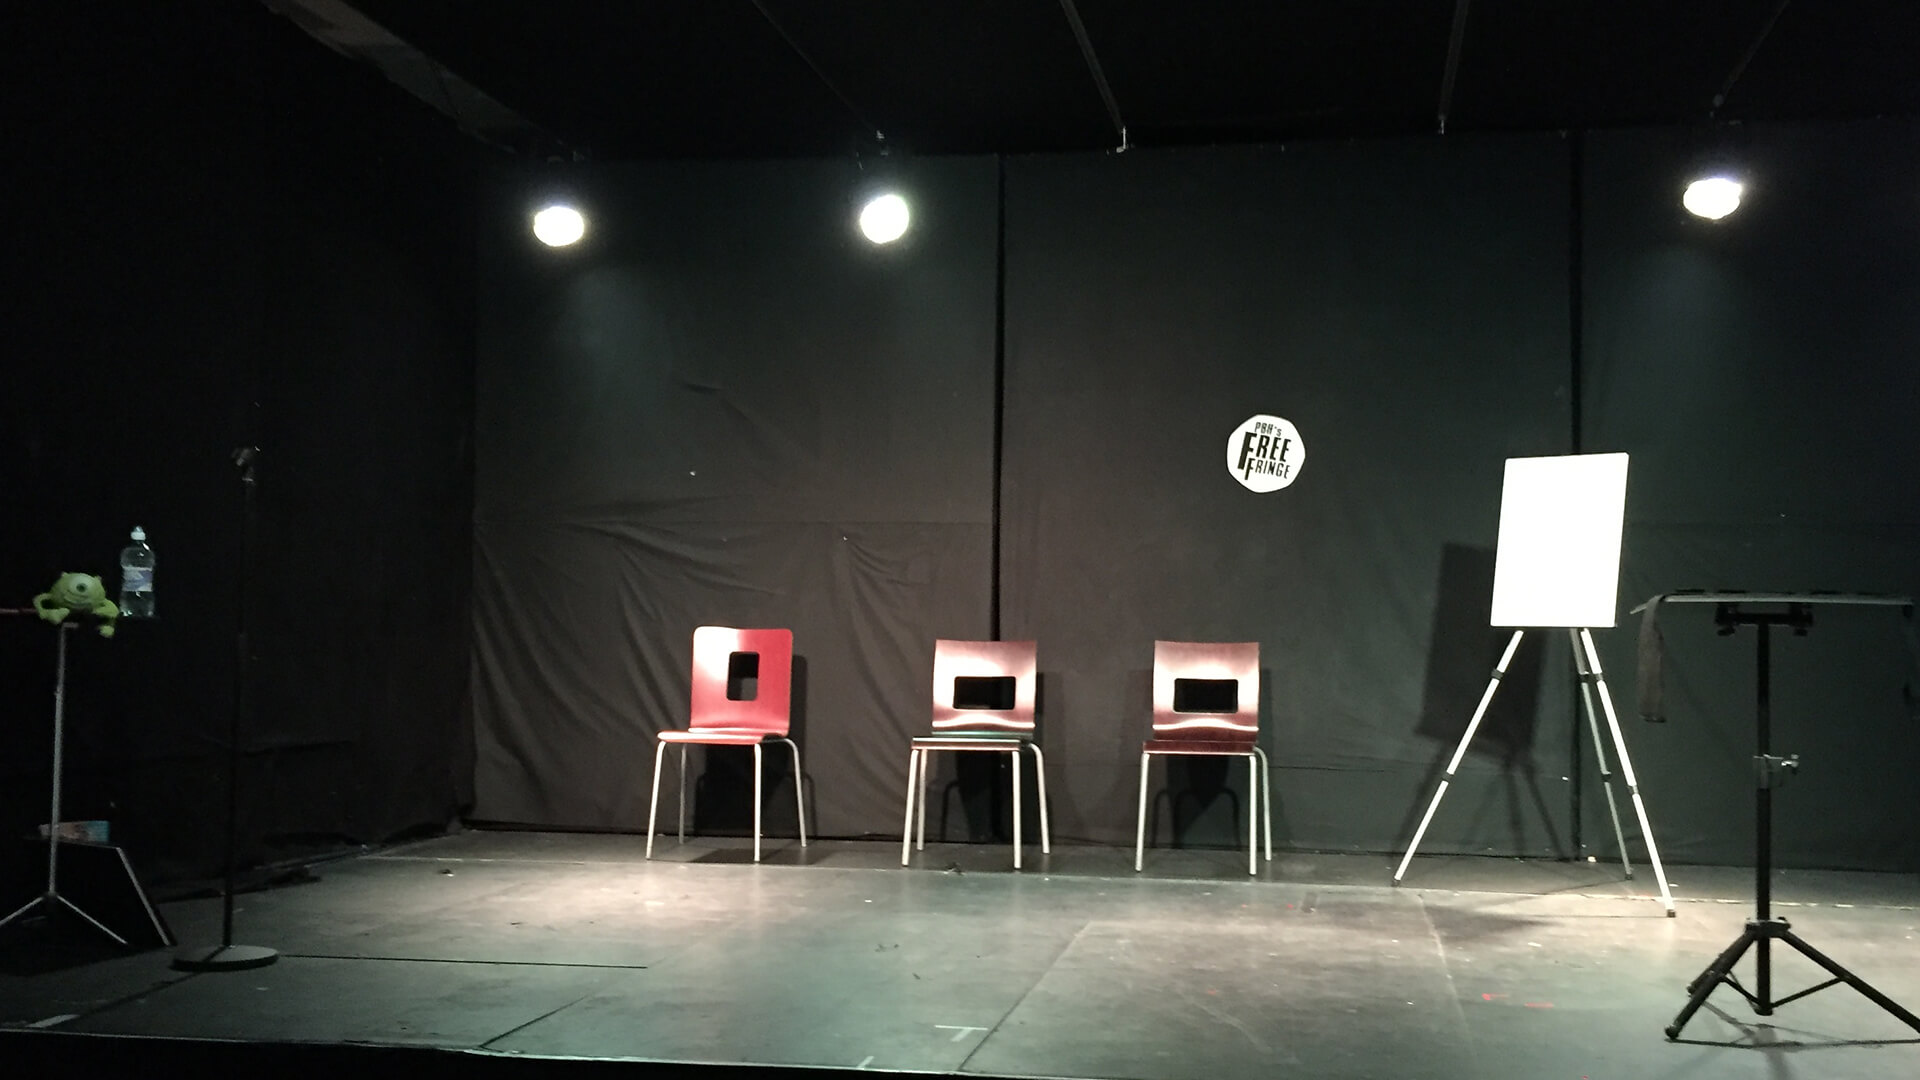 plain stage set up mind games for stage entertainment